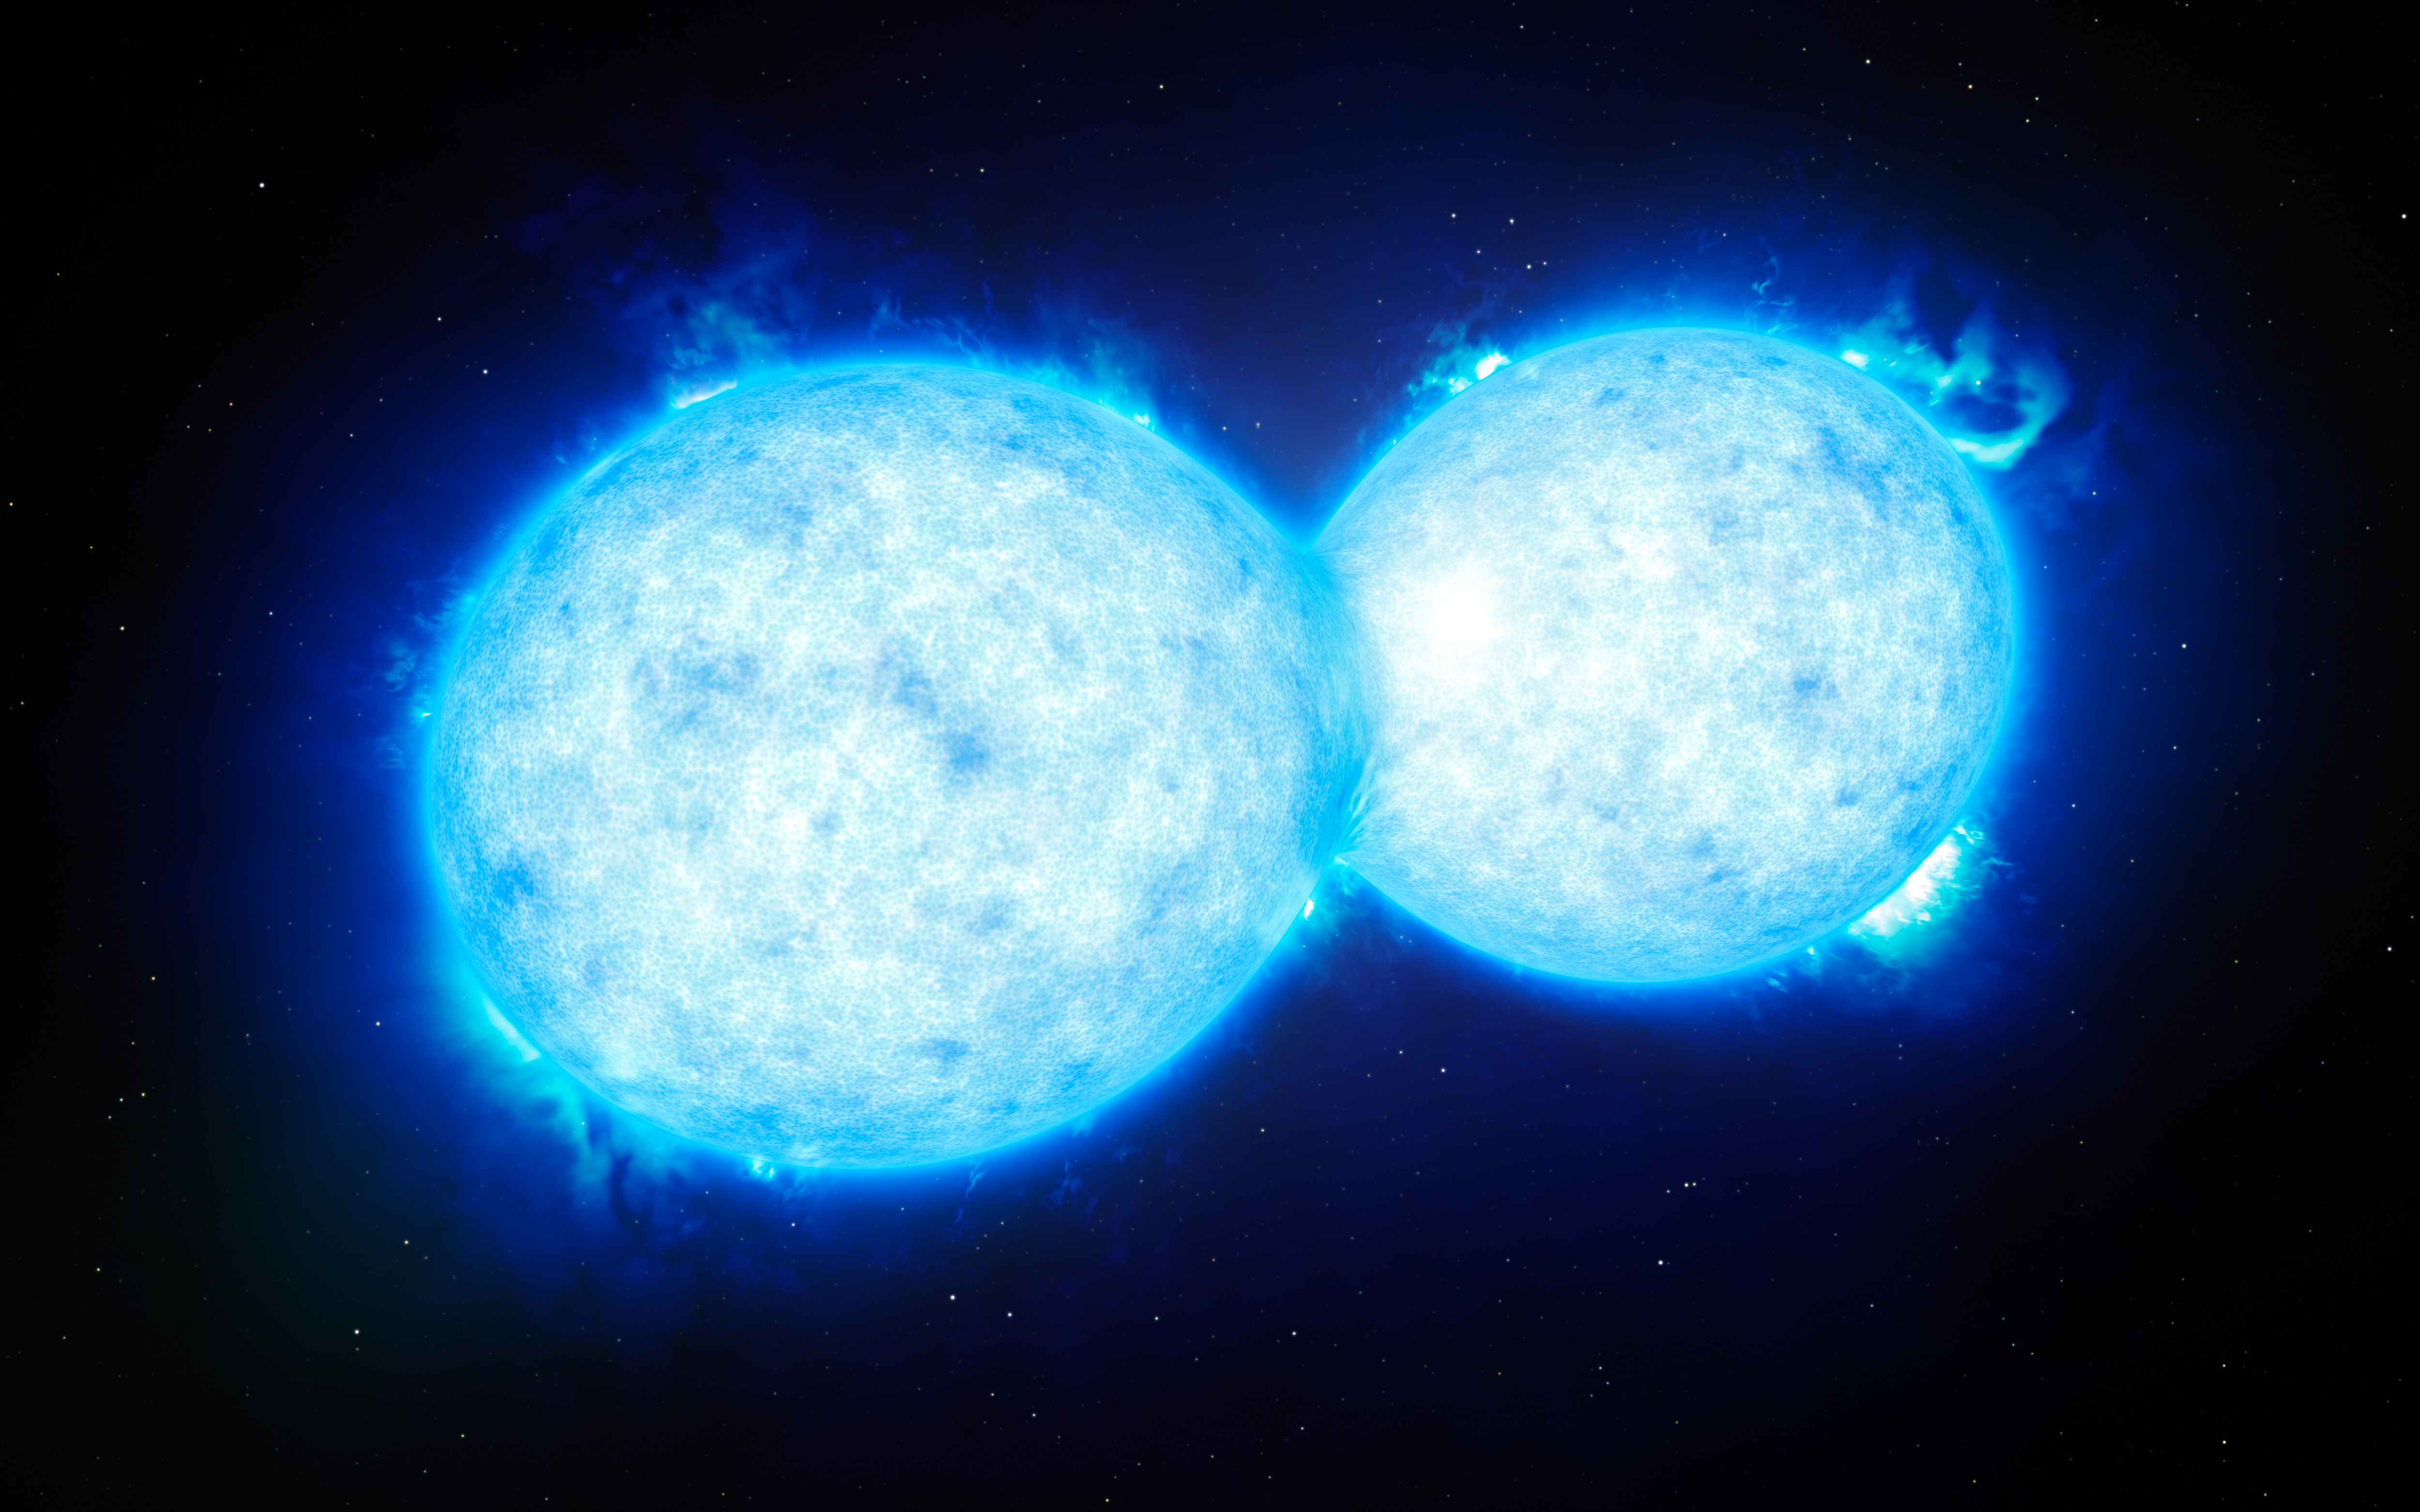 This artist's impression shows VFTS 352 — the hottest and most massive double star system to date... [+] where the two components are in contact and sharing material. The two stars in this extreme system lie about 160 000 light-years from Earth in the Large Magellanic Cloud. This intriguing system could be heading for a dramatic end, either with the formation of a single giant star or as a future binary black hole. Image credit: ESO/L. Calçada